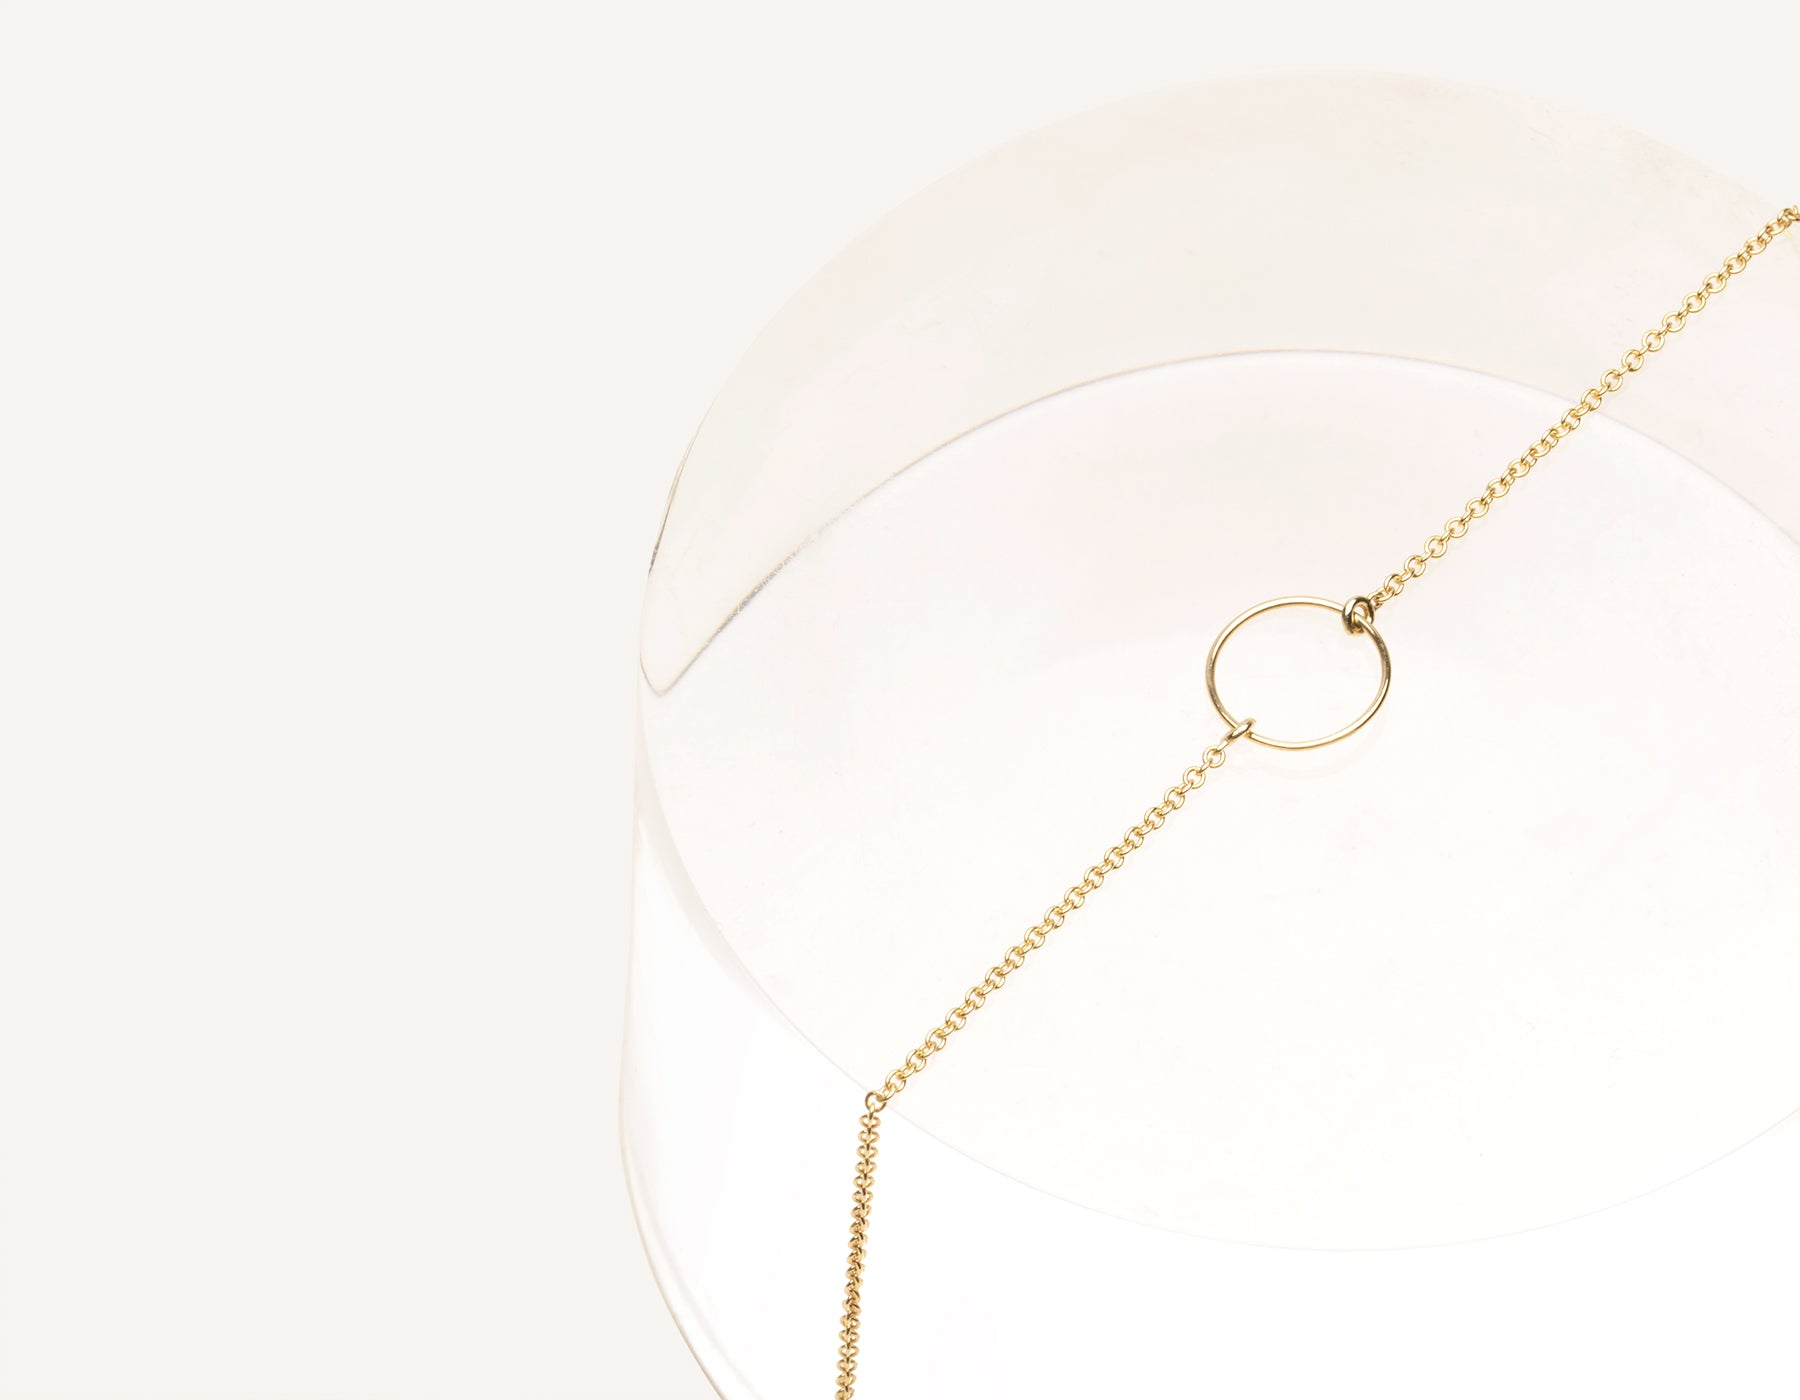 Unique stylish 14k solid gold Circle Bracelet on simple chain by Vrai & Oro sustainable jewelry, 14K Yellow Gold